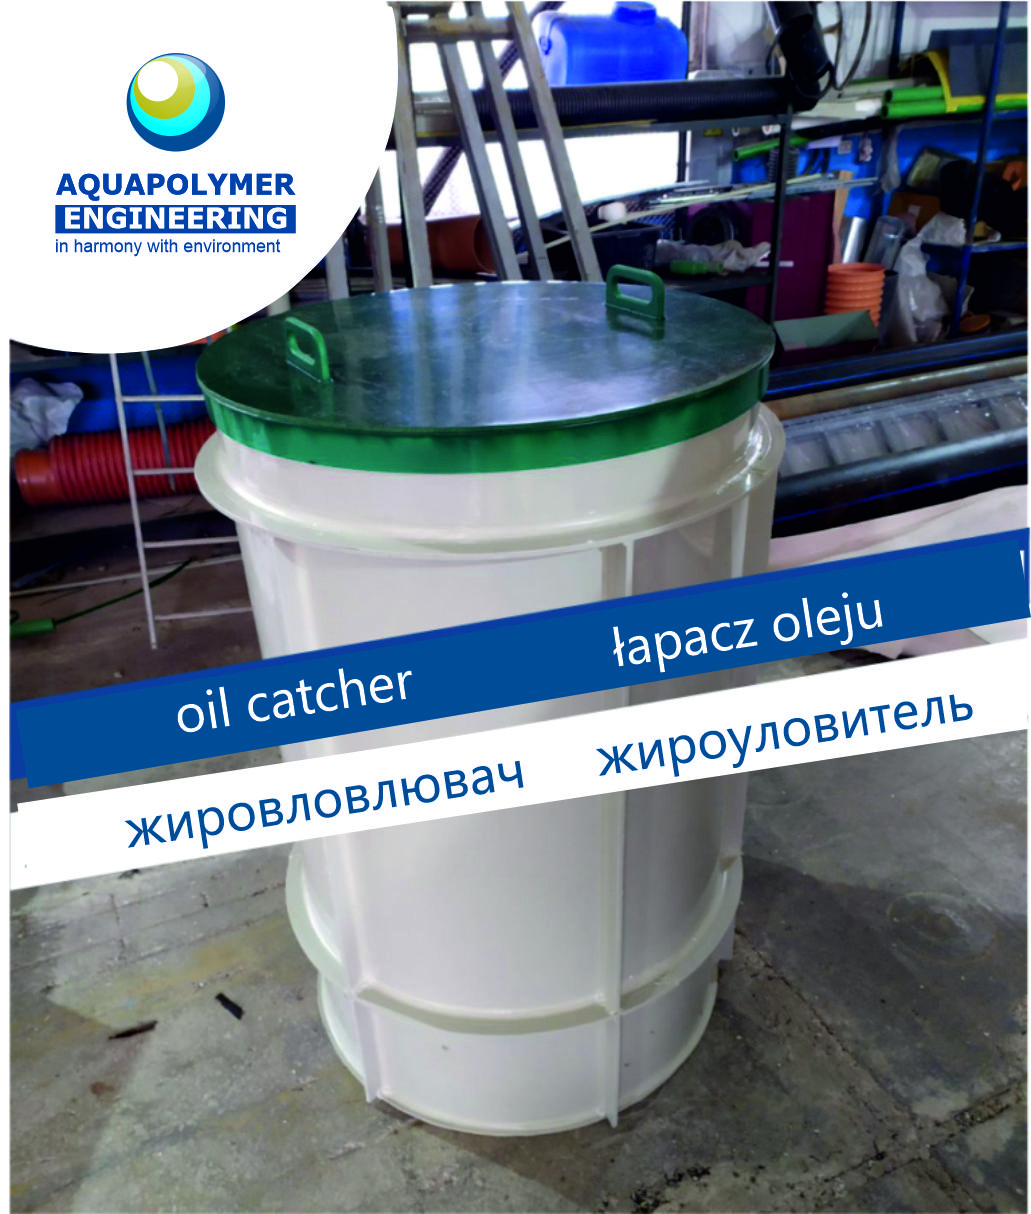 To order a grease separator